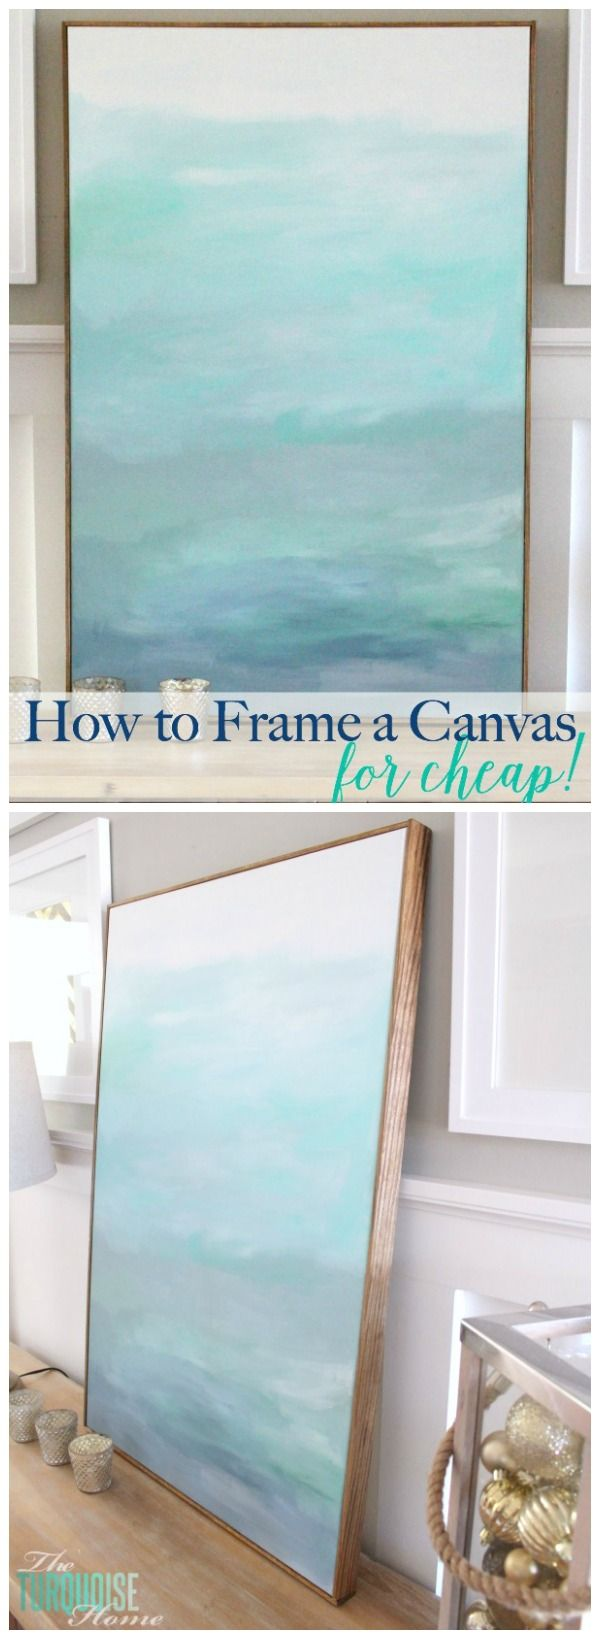 How to frame poster without glare